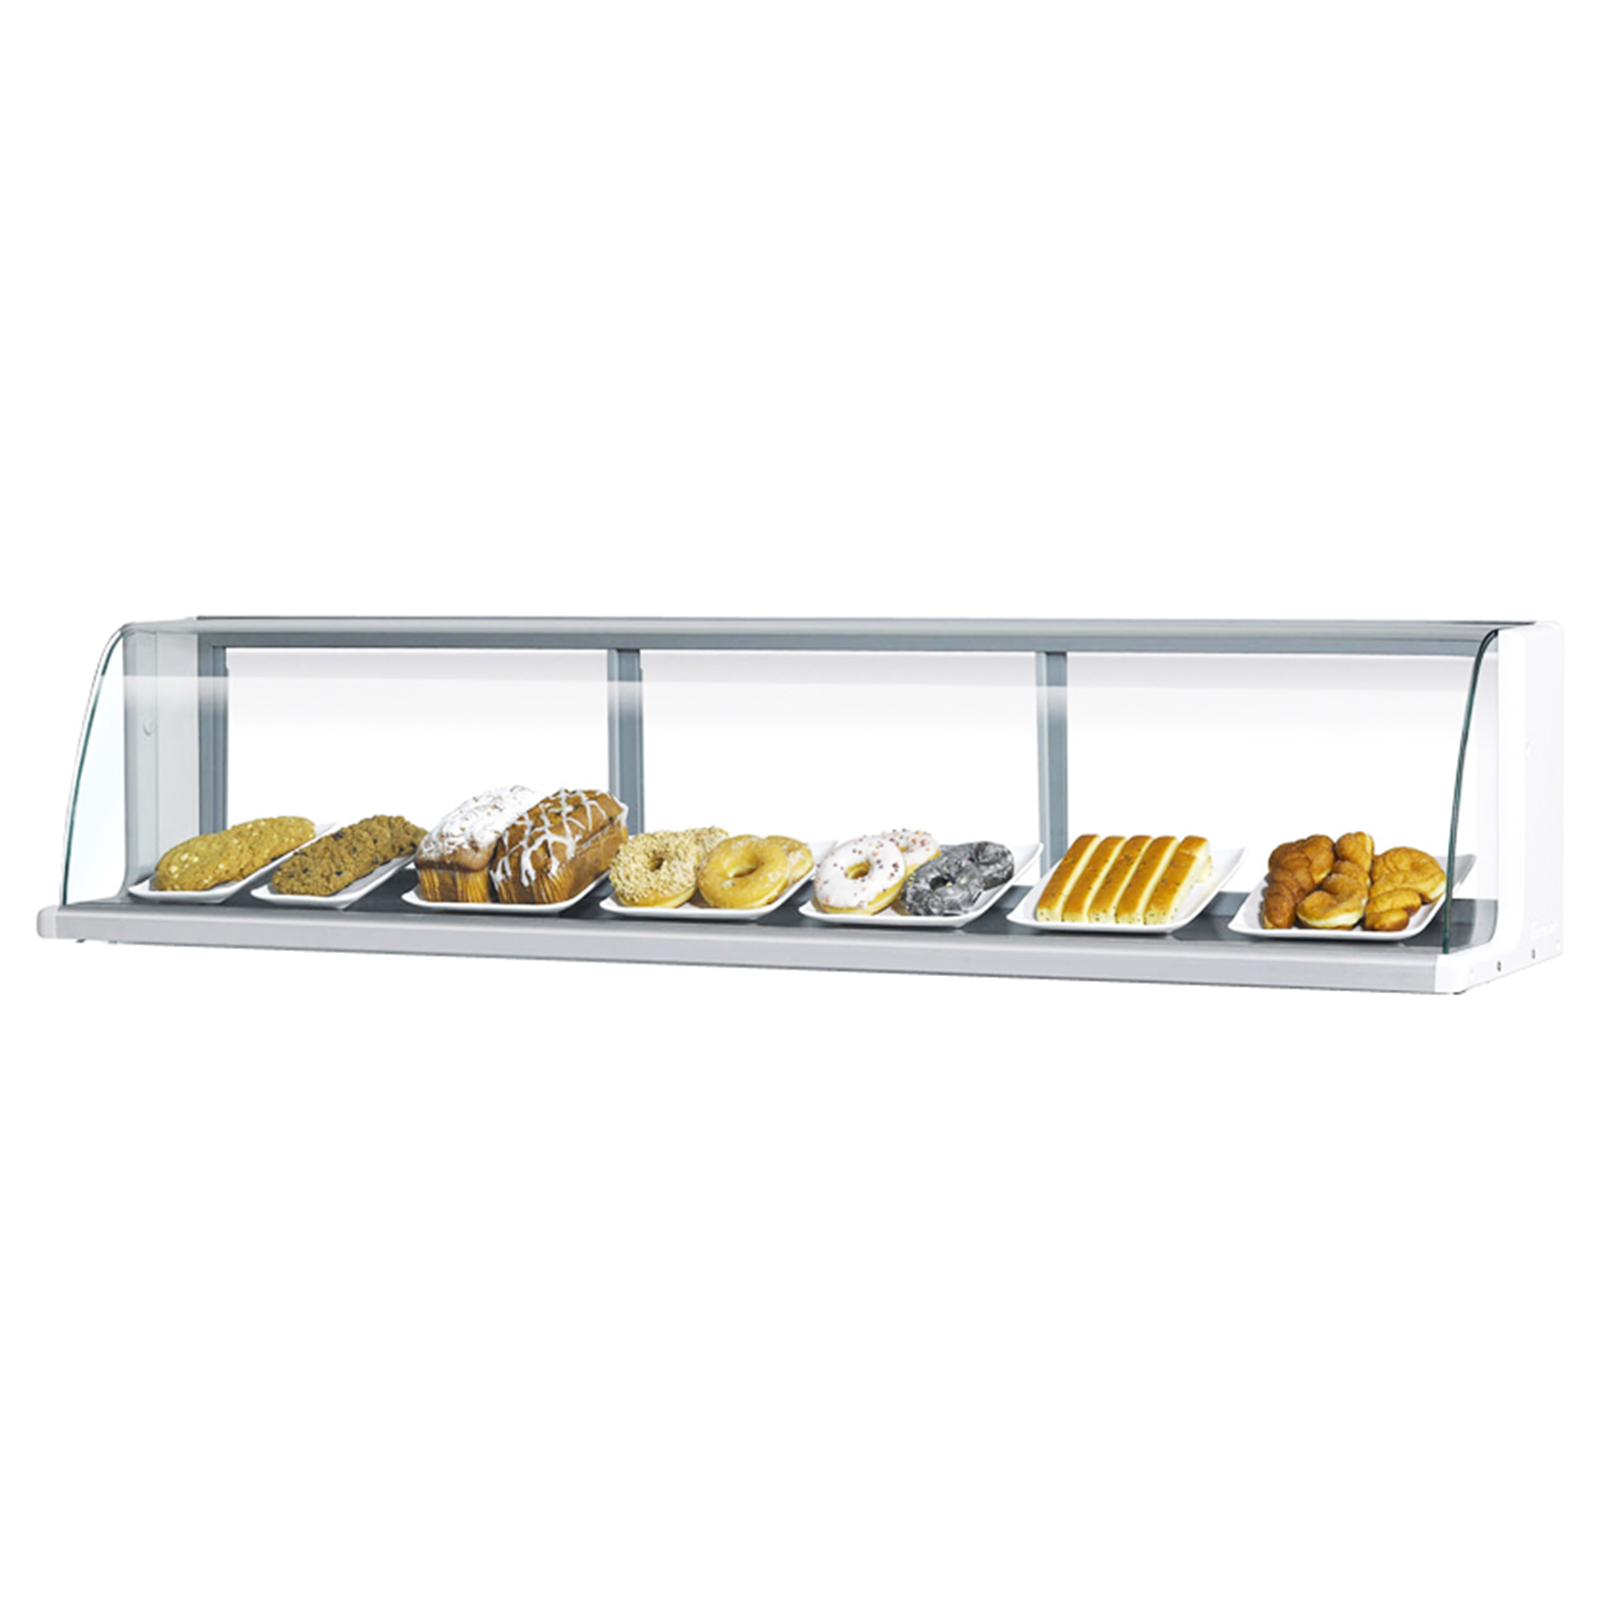 Turbo Air TOMD-50LB display case, non-refrigerated countertop